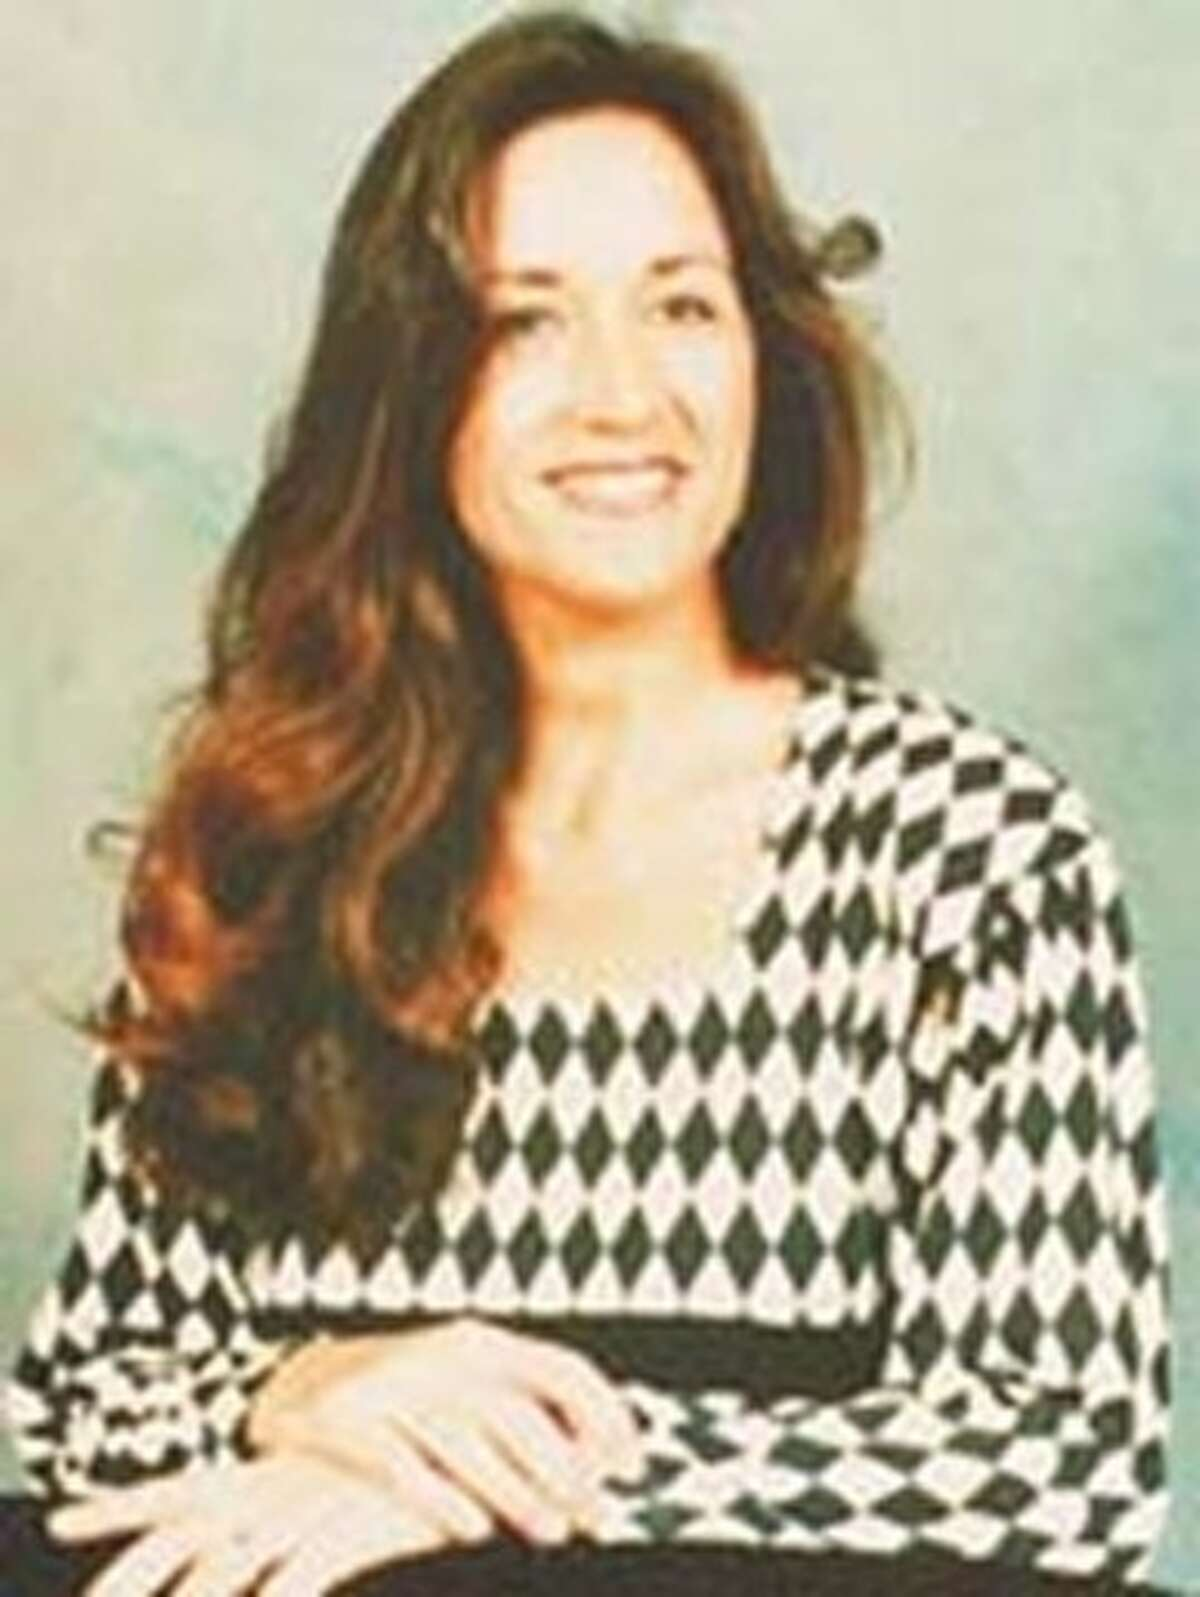 Jane McDonald-Crone, 34, of Magnolia, was reported missing by her husband Nov. 15, 1993. She had gone to work in Houston on Nov. 12 and had reportedly visited some clubs that evening in northwest Harris County. Her car was found Nov. 16, 1993, in southwest Montgomery County a few miles from her home.